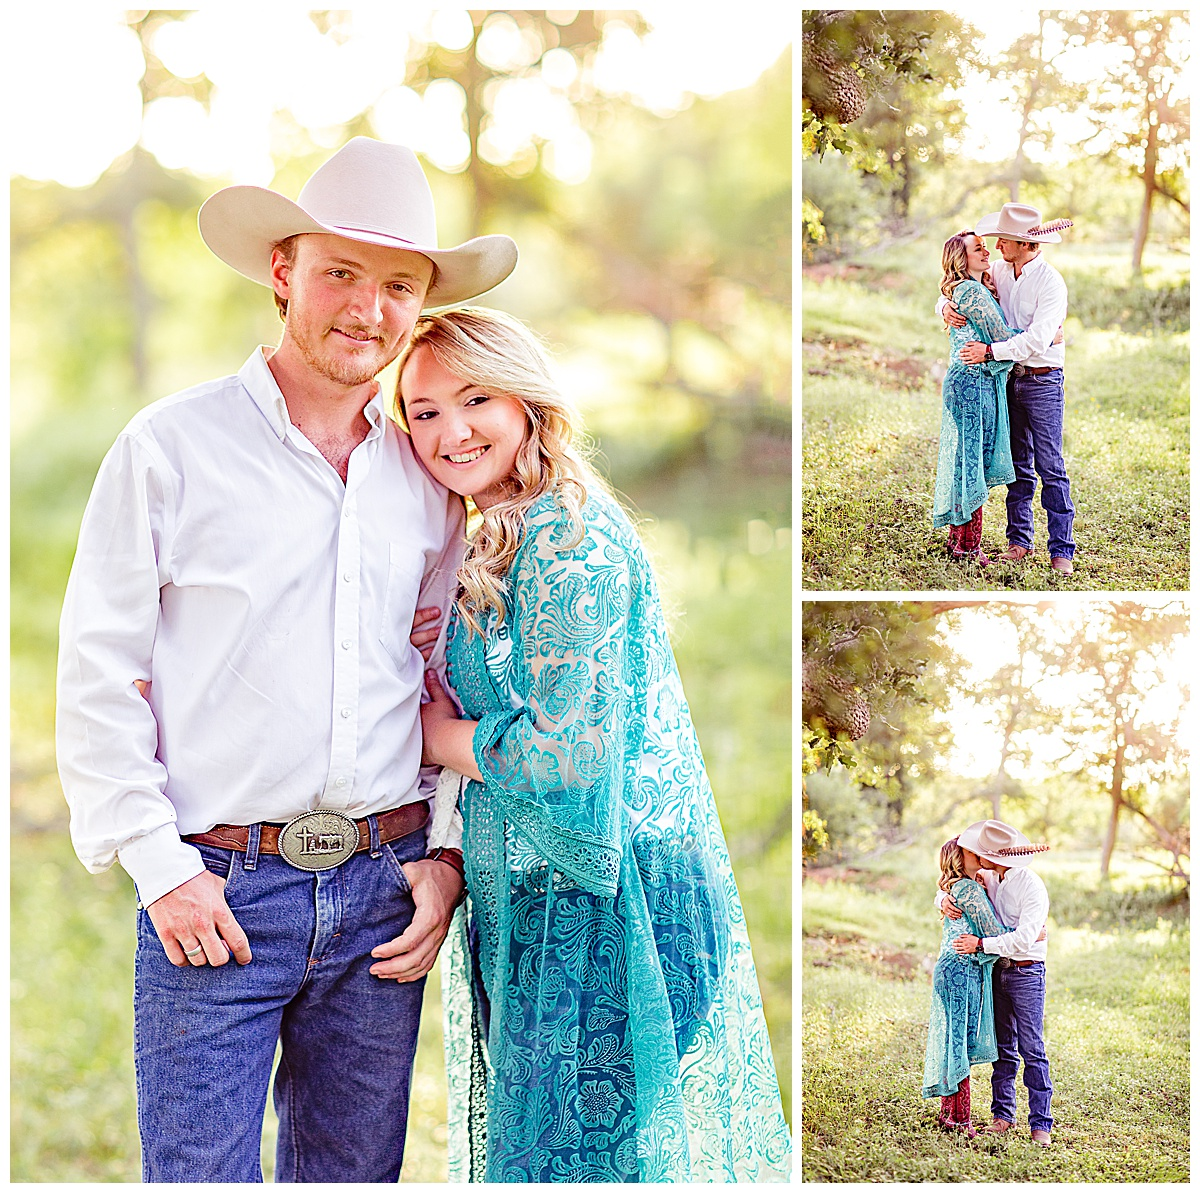 Rustic-Engagement-Session-Horse-Texas-Sunset-Carly-Barton-Photography_0016.jpg